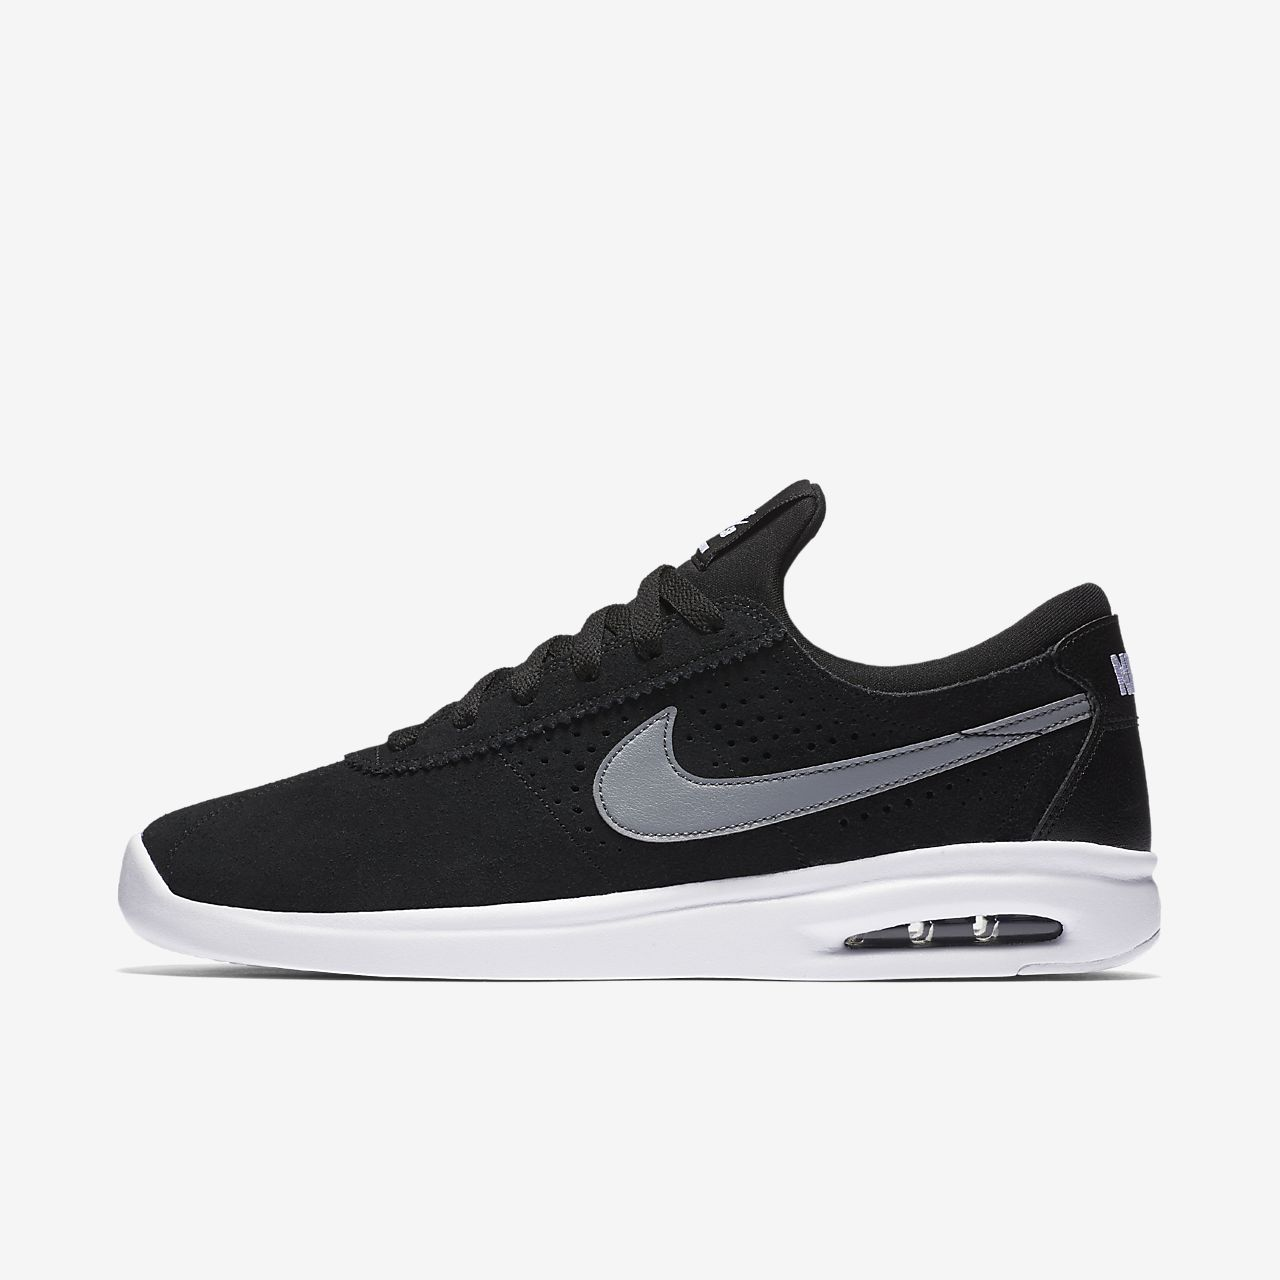 low priced a2344 caea1 ... Chaussure de skateboard Nike SB Air Max Bruin Vapor pour Homme